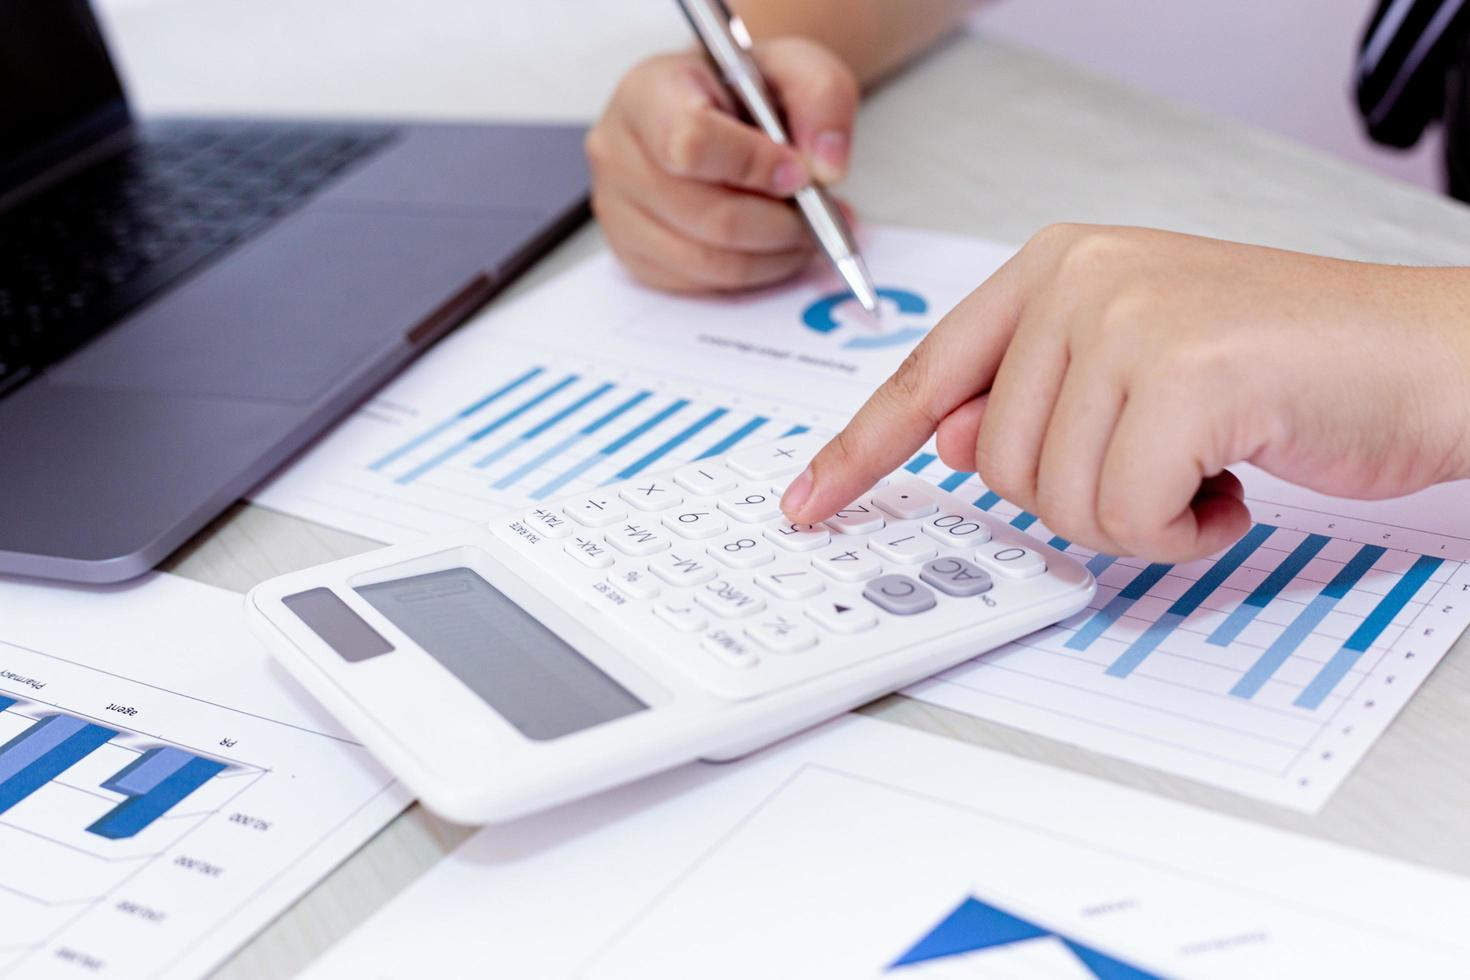 Business person uses calculator to analyze financial data at work photo